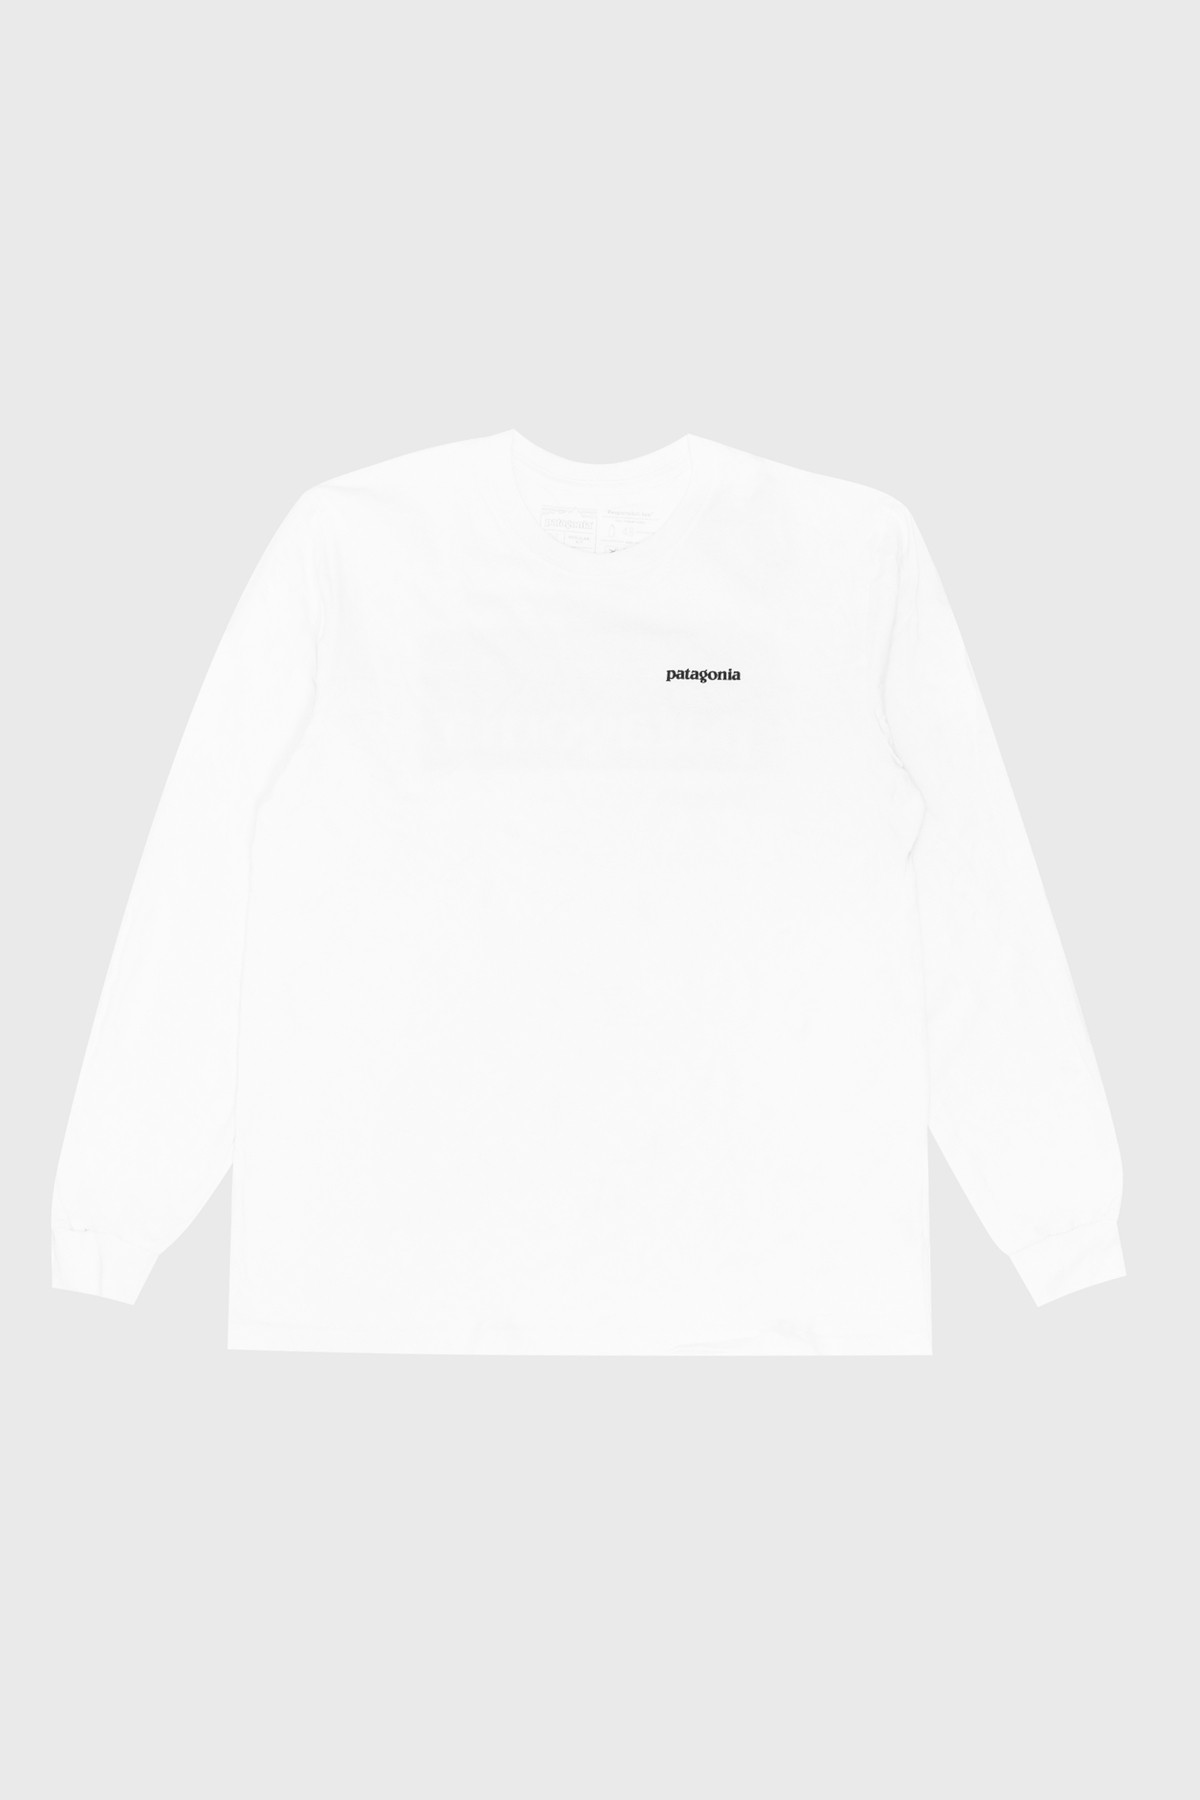 patagonia - Men's Long-Sleeved P-6 Logo Responsibili-Tee® - White